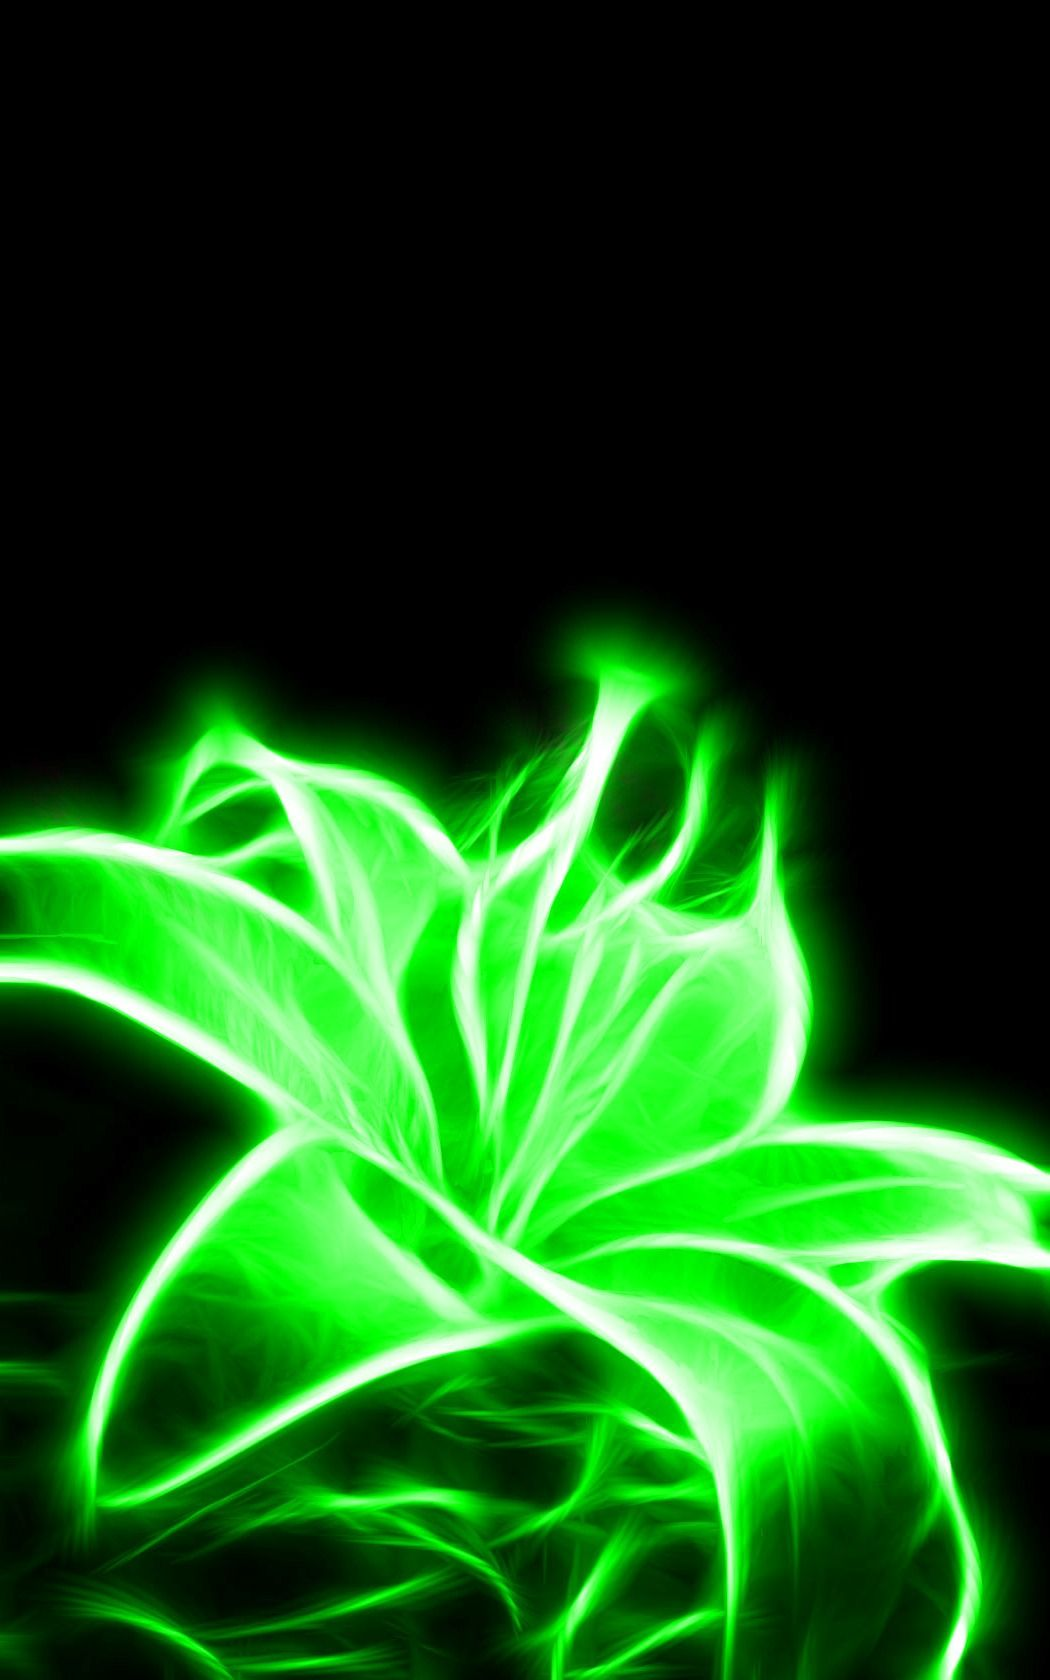 Glowing Neon Green Flower: i might get this for a tattoo ...